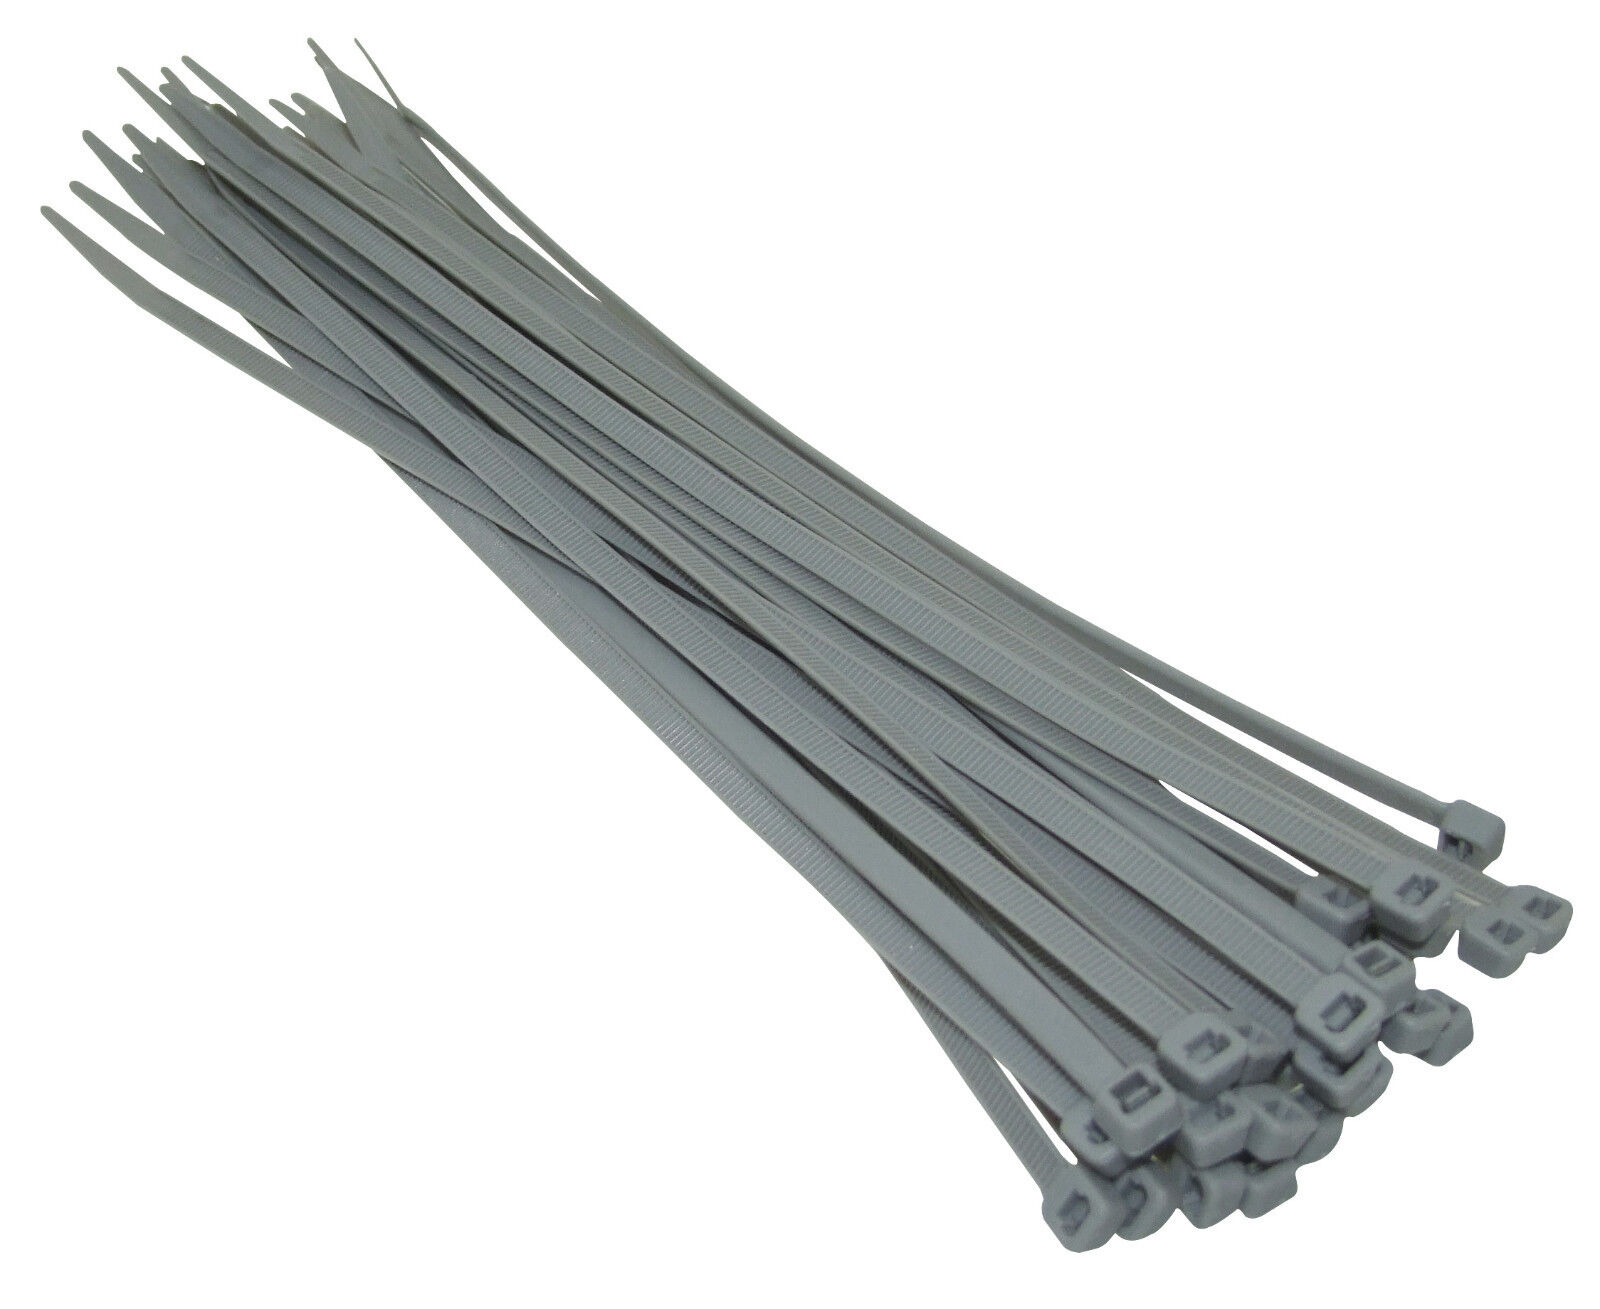 1000 x SILVER GREY 2.5mm WIDE x 100mm LENGTH - HEAVY DUTY NYLON CABLE ZIP TIES